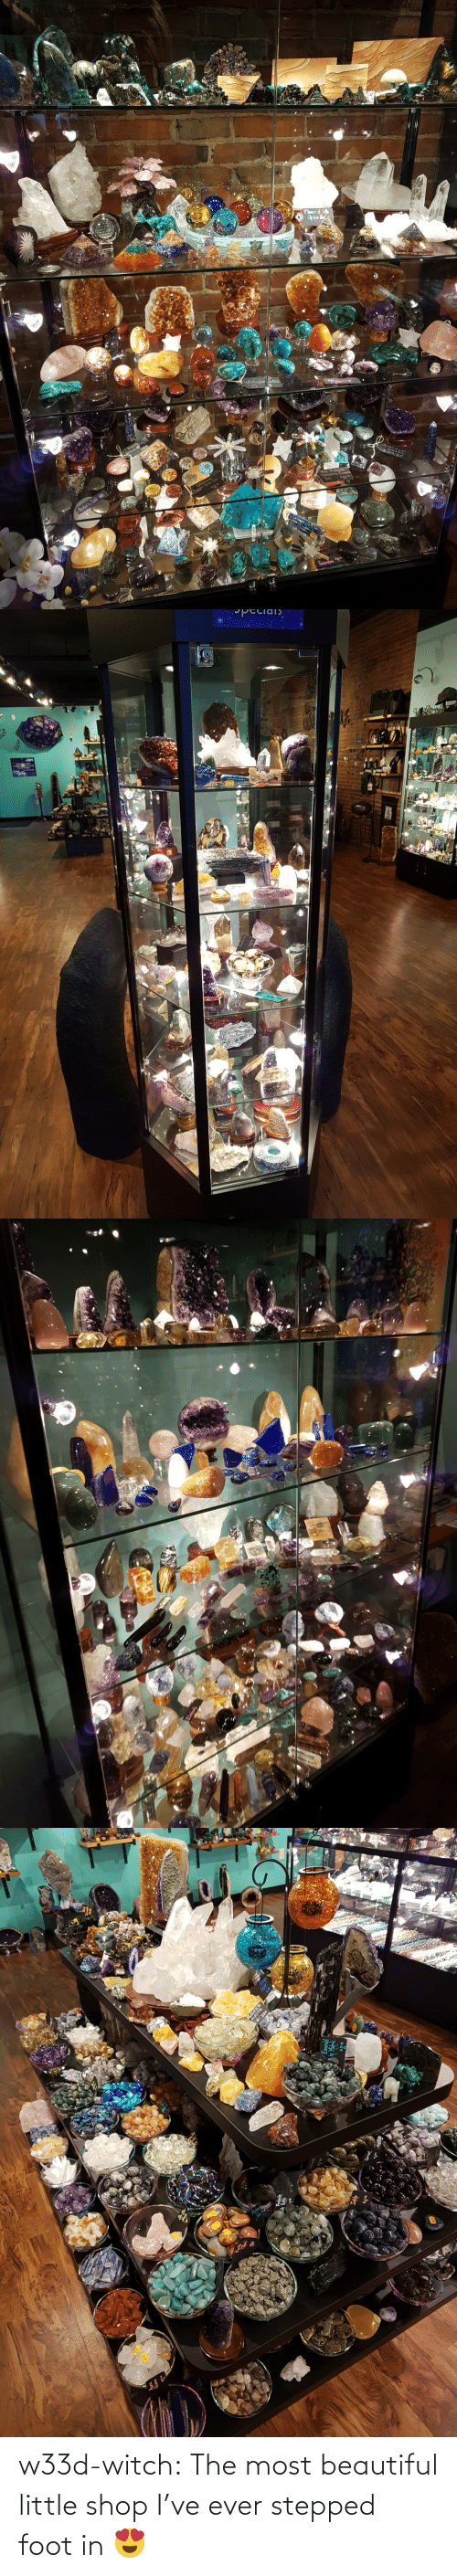 shop: w33d-witch: The most beautiful little shop I've ever stepped foot in 😍